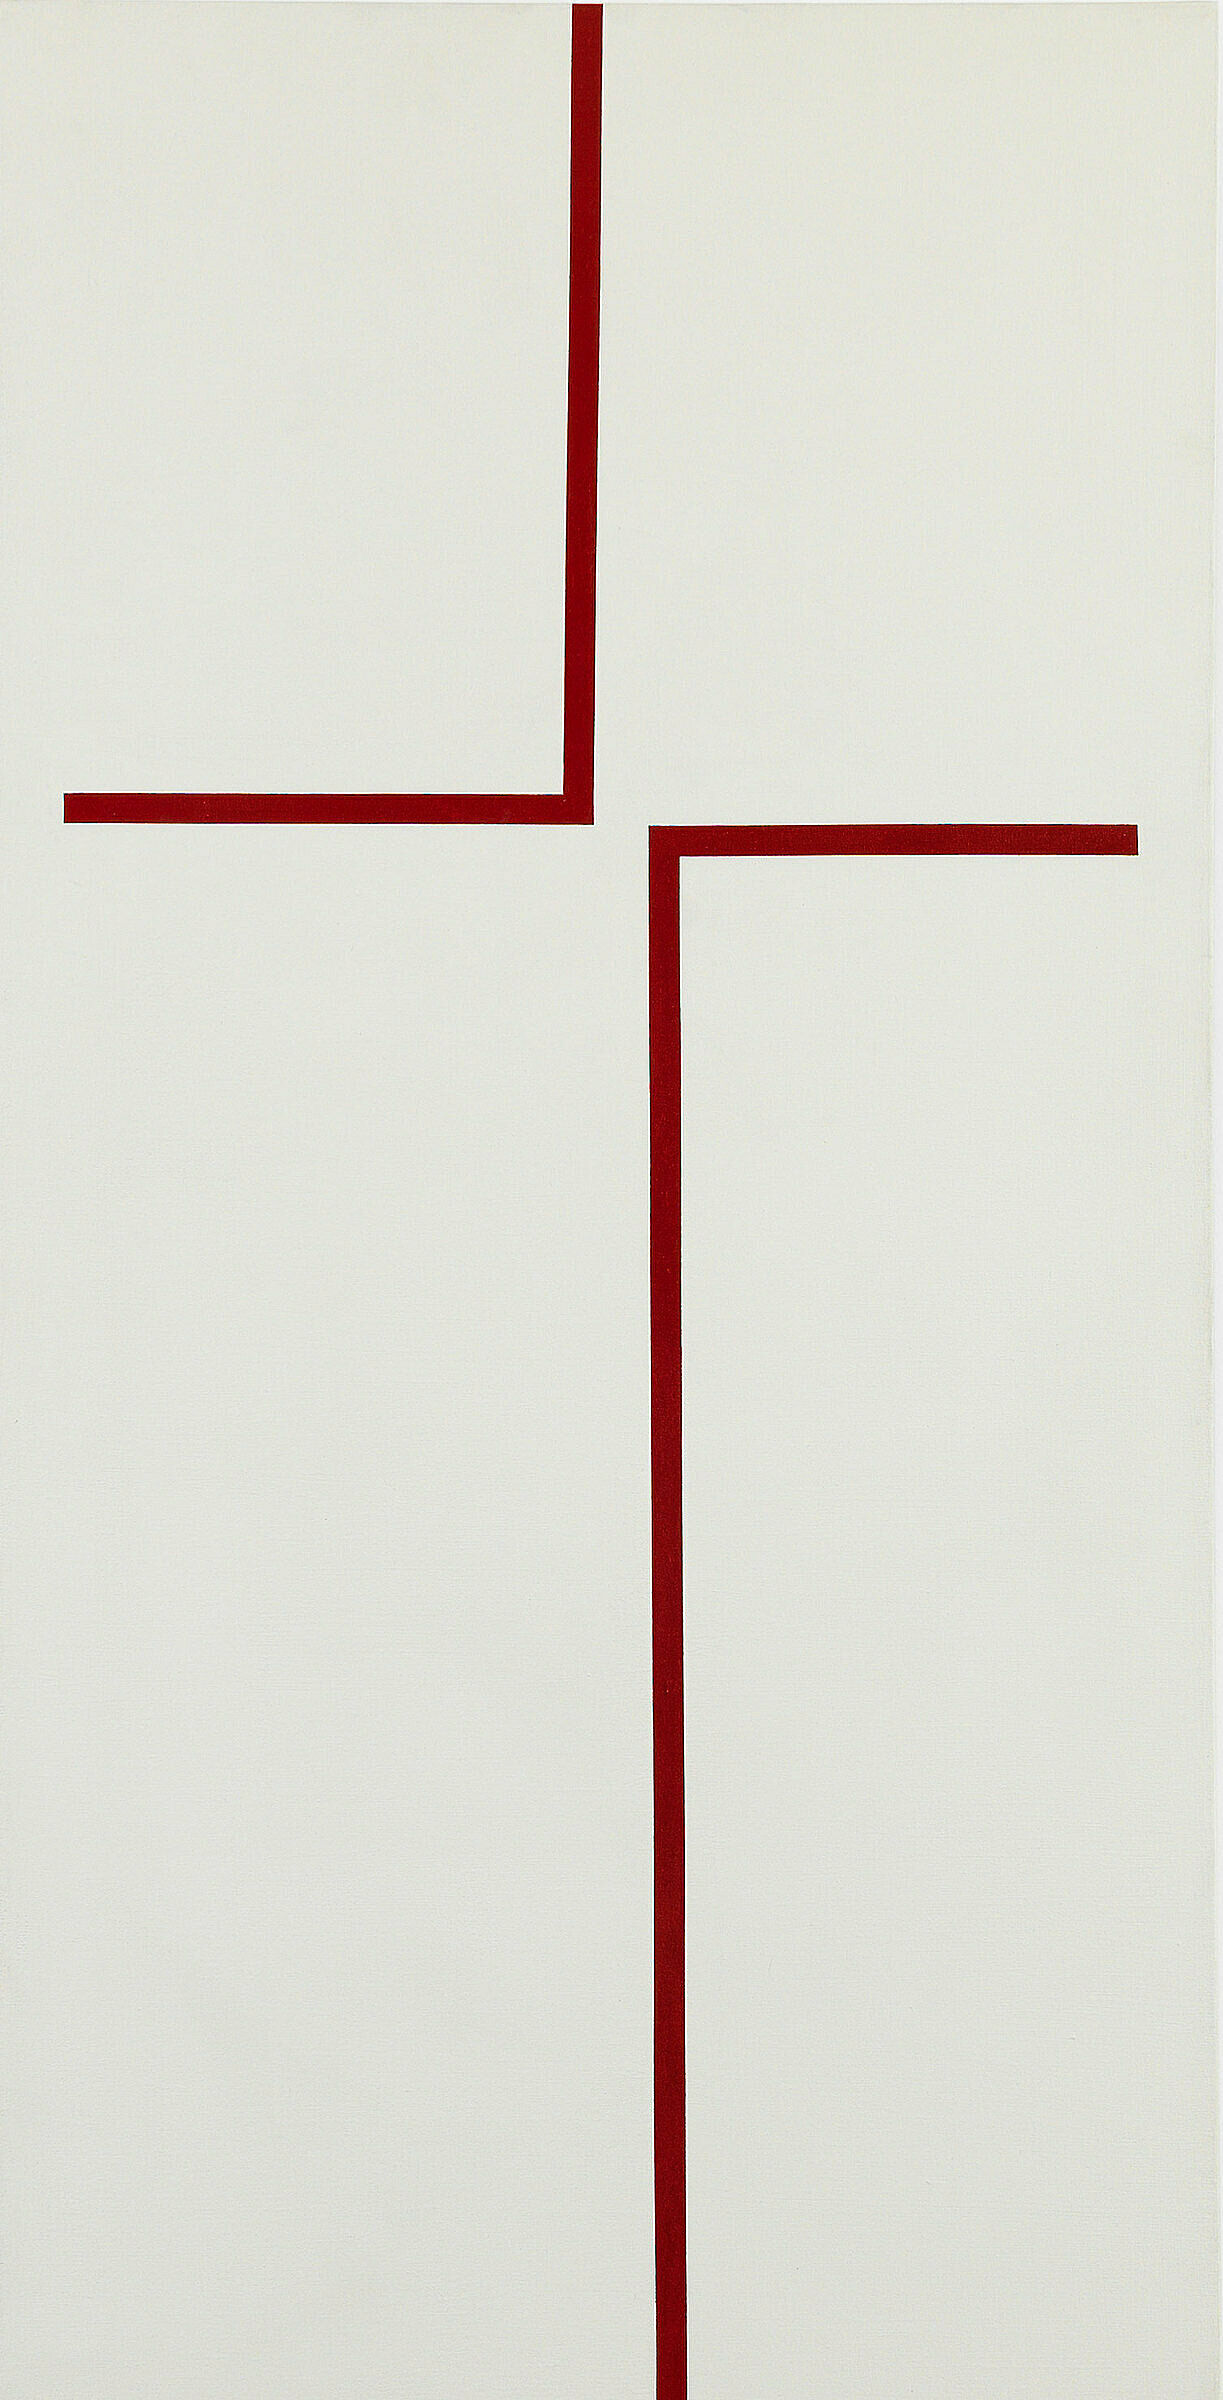 An abstract work by Carmen Herrera.